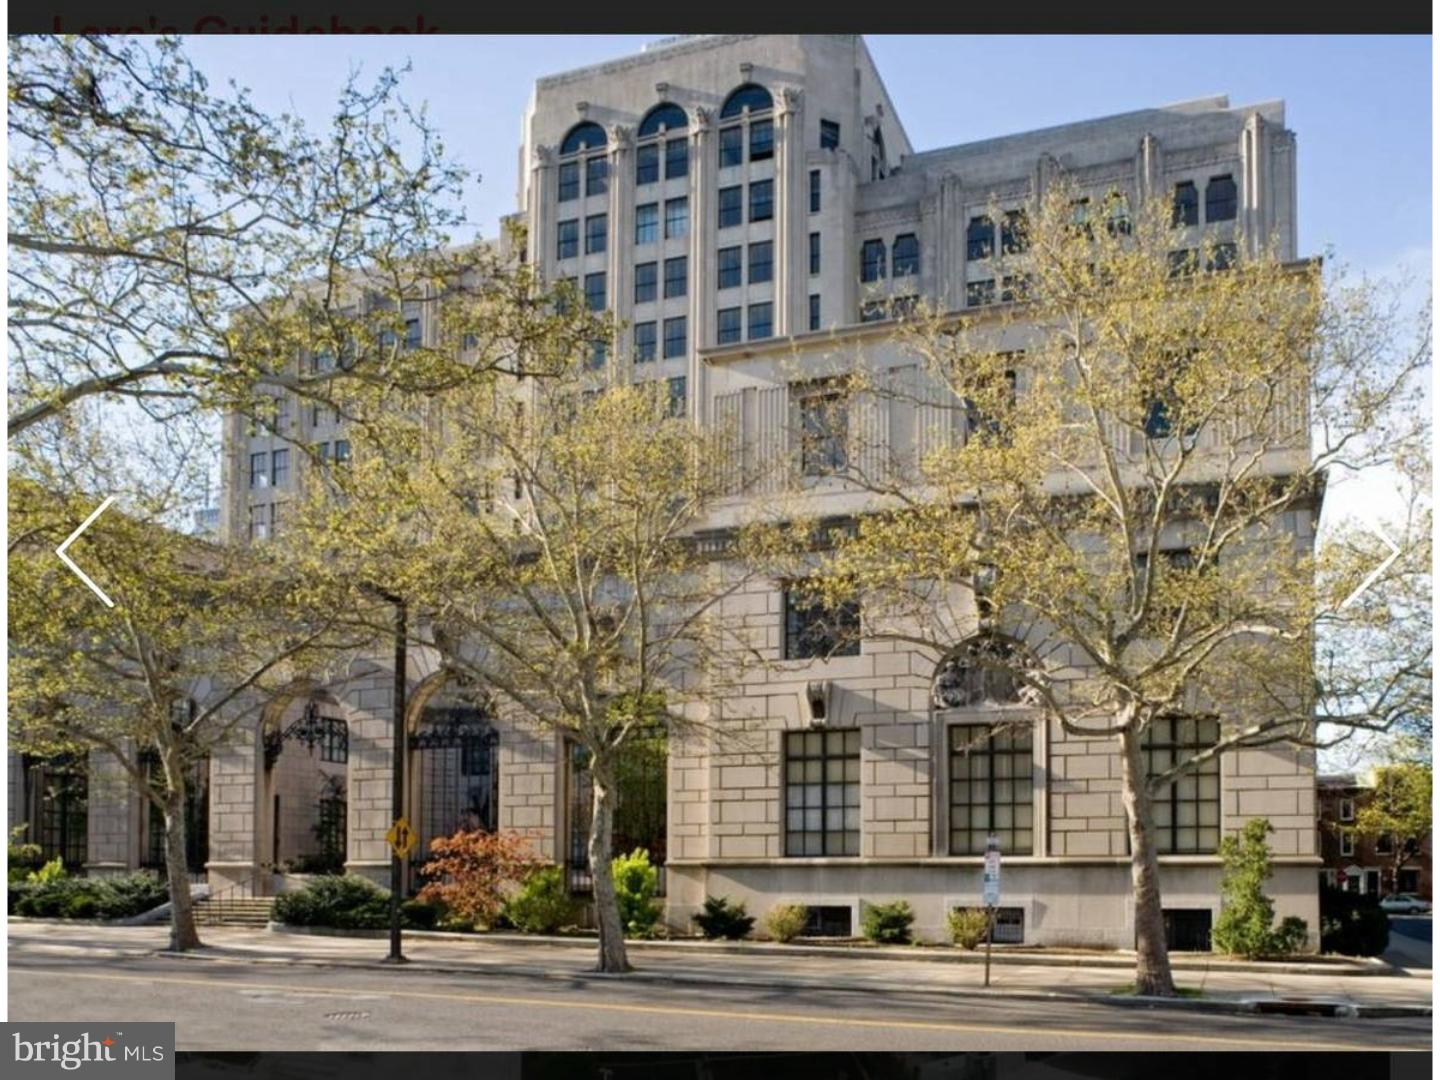 LIMITED TIME SPECIAL: RECEIVE ONE MONTH'S FREE RENT ON A 13 MONTH LEASE AND RECEIVE A $1000 MOVE IN CREDIT!!  PERFECTION AND VALUE is what you will find in this 2 BEDROOM, 2 BATH residence located at THE SCHOOL ADMINISTRATION BUILDING. This fantastic layout with all open LIVING and DINING area boasts UNOBSTRUCTED views of the Philadelphia ART MUSEUM and the PARKWAY. Kitchen features BREAKFAST BAR with all granite counter tops, and stainless steel appliances. Each bedroom is SUPER spacious and includes EXTRA LARGE closets. 2100 PARKWAY, constructed in the 1920's, was the original home of THE SCHOOL BOARD OF PHILADELPHIA. The grandeur of THIS ART DECO STYLE BUILDING, with one of the most elegant entryways in PHILADELPHIA, offers old world elegance with 2019 features. GYM in building, 24/7 door person, and just minutes from Whole foods, Trader Joe's, Target, I 76, and Kelly Drive. GARAGE PARKING available for an additional fee. Photo's are of model unit.